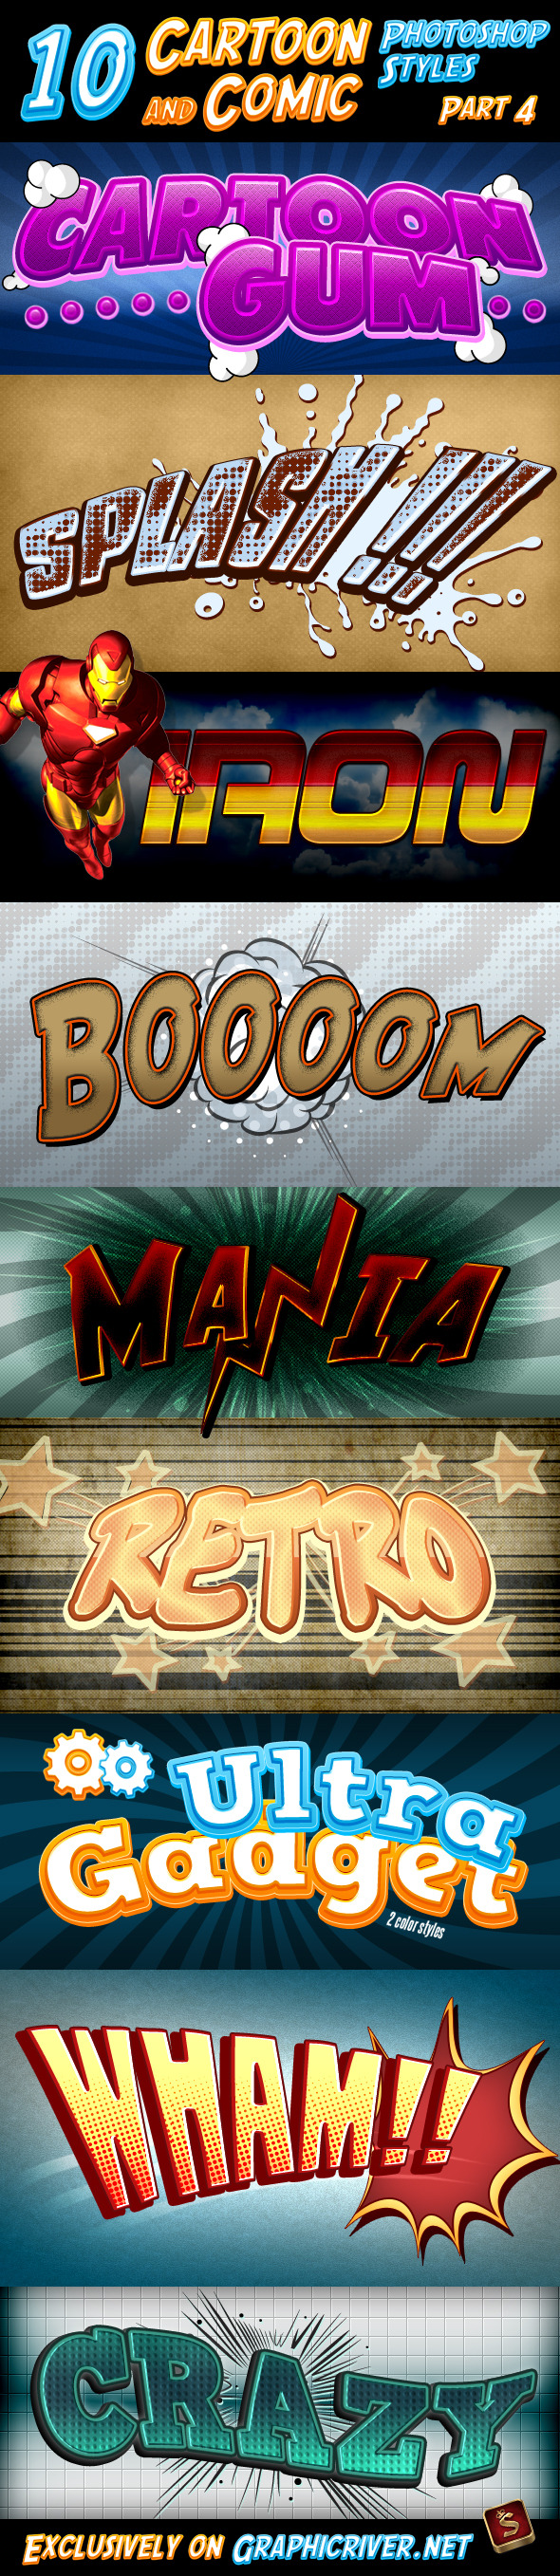 Cartoon and Comic Book Styles - Part 4 - Text Effects Styles